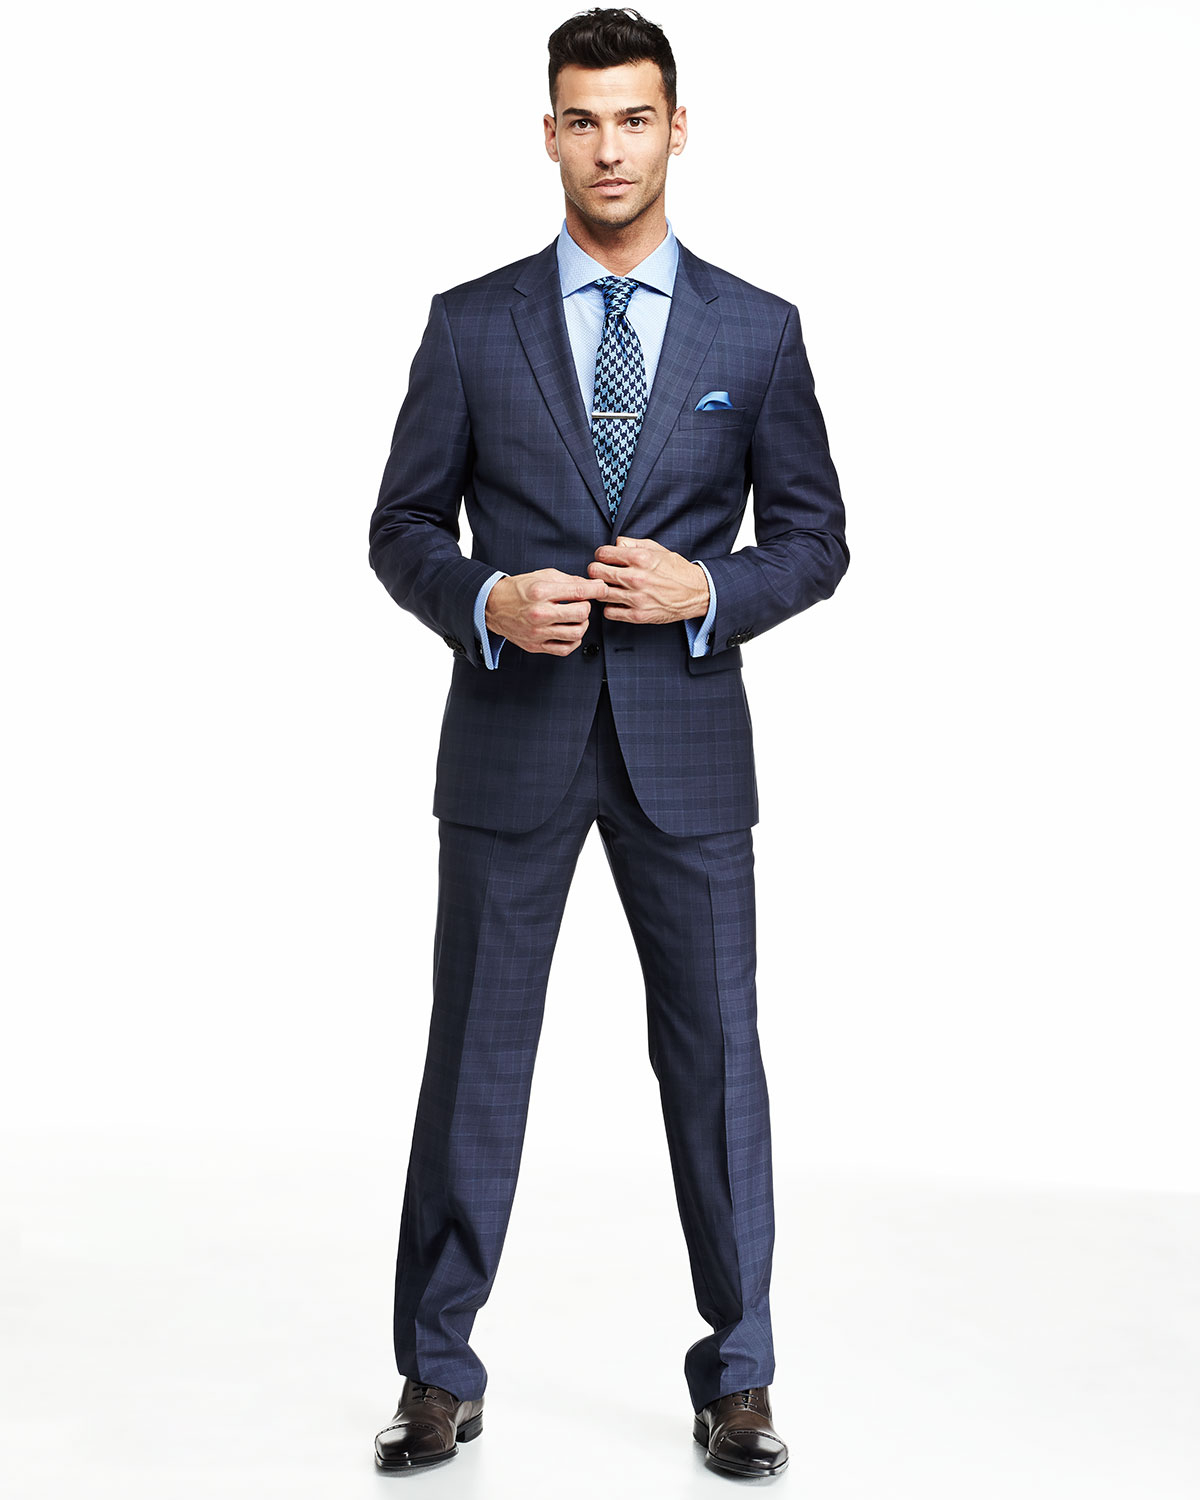 hugo boss blue suit with ties combination. Black Bedroom Furniture Sets. Home Design Ideas